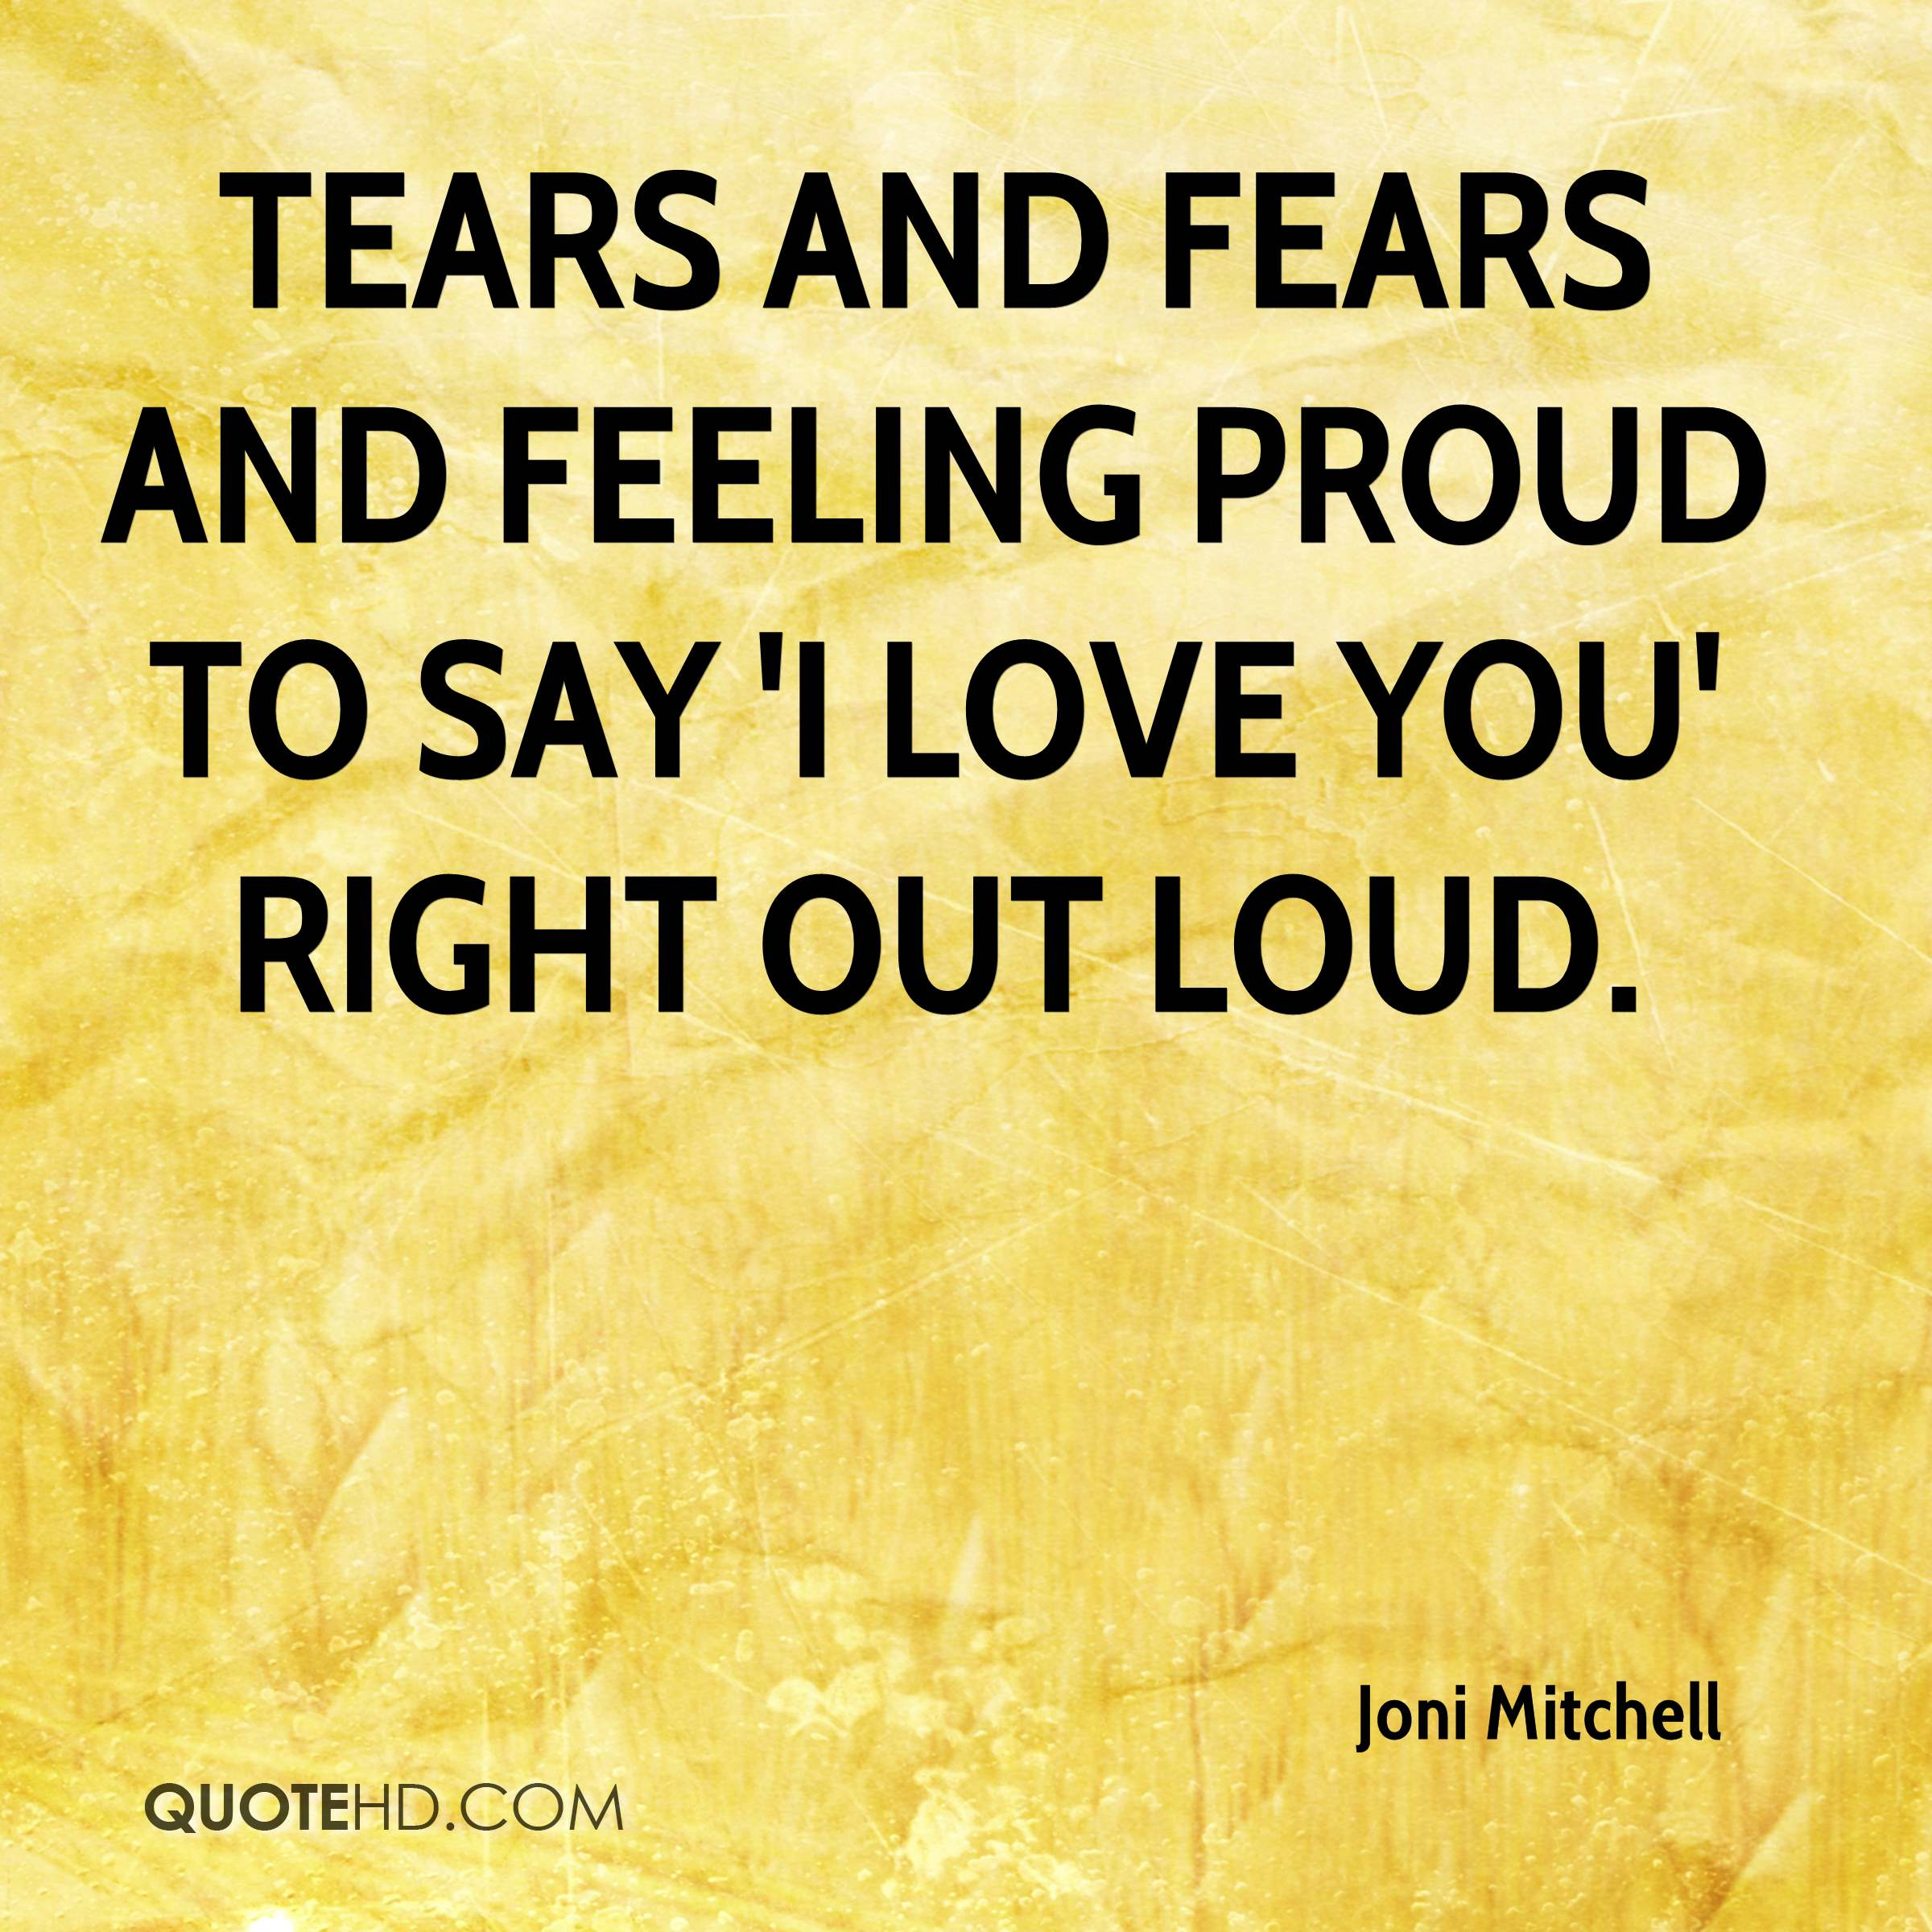 Tears and fears and feeling proud to say 'I love you' right out loud.